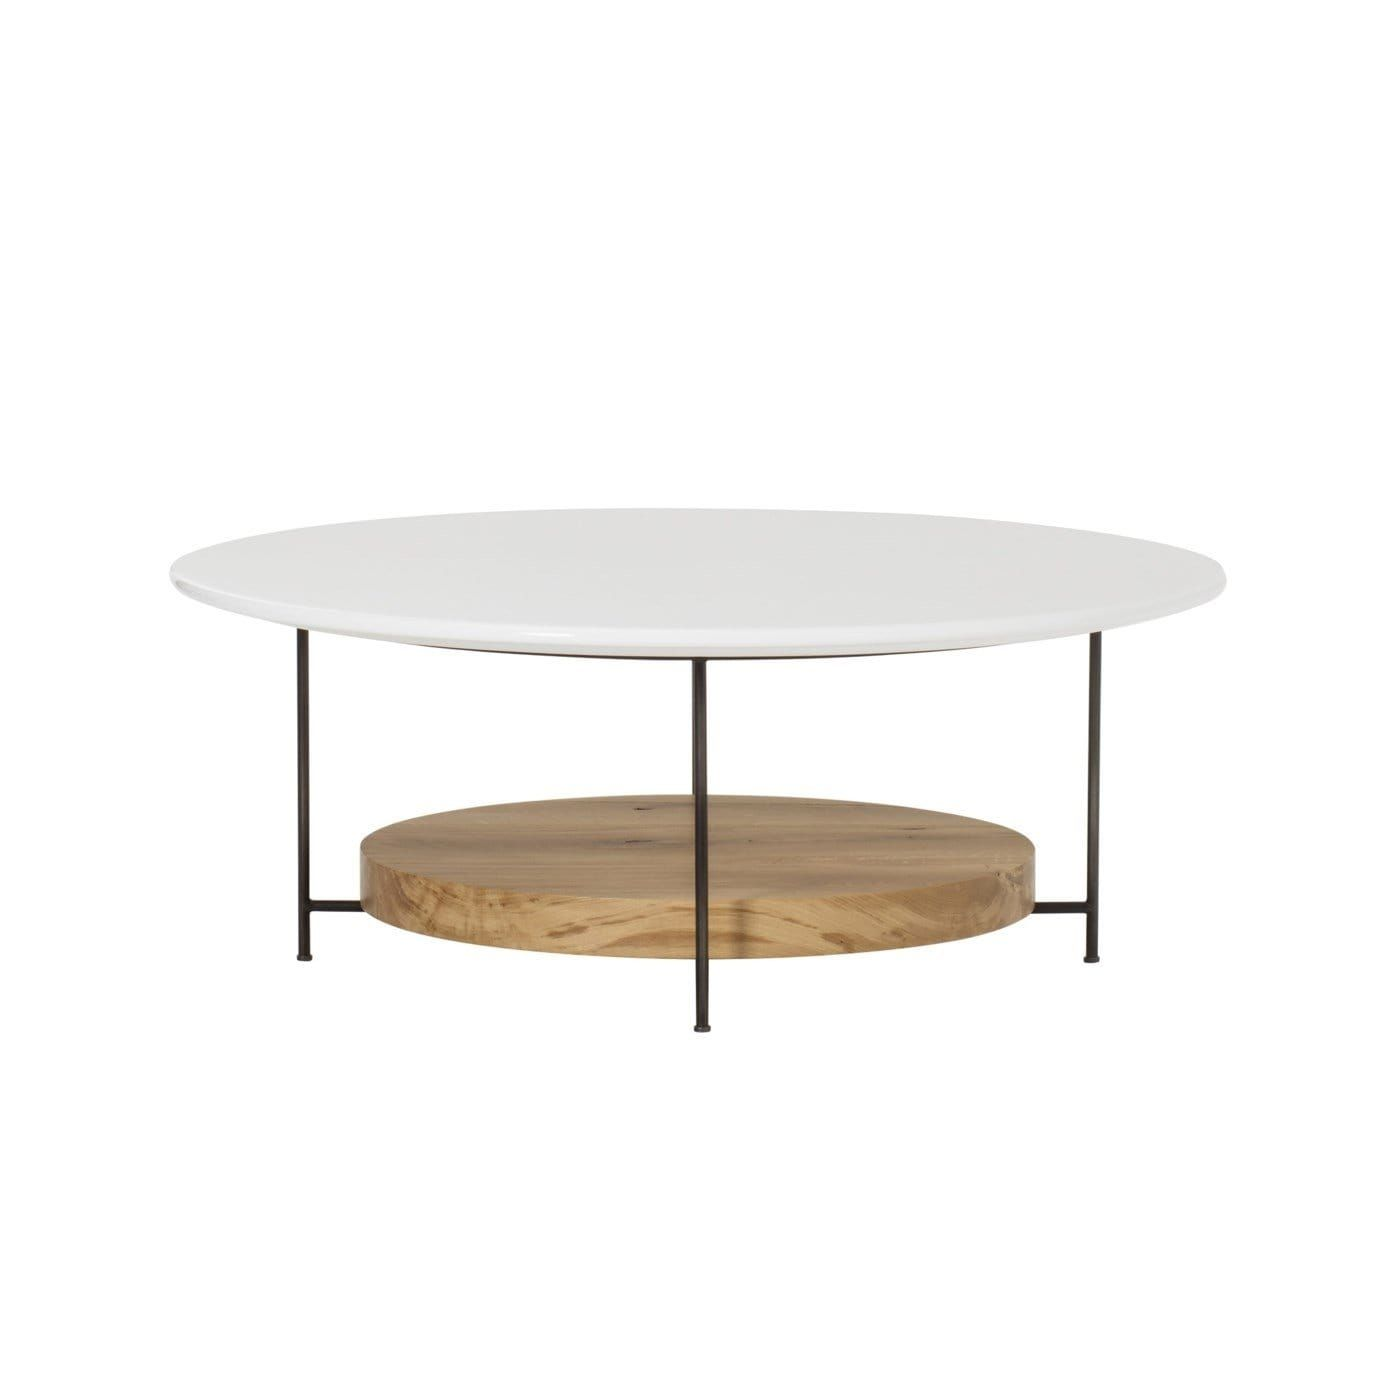 Olivia Round Coffee Table White In 2020 Coffee Table Round Coffee Table White Round Coffee Table [ 1400 x 1400 Pixel ]